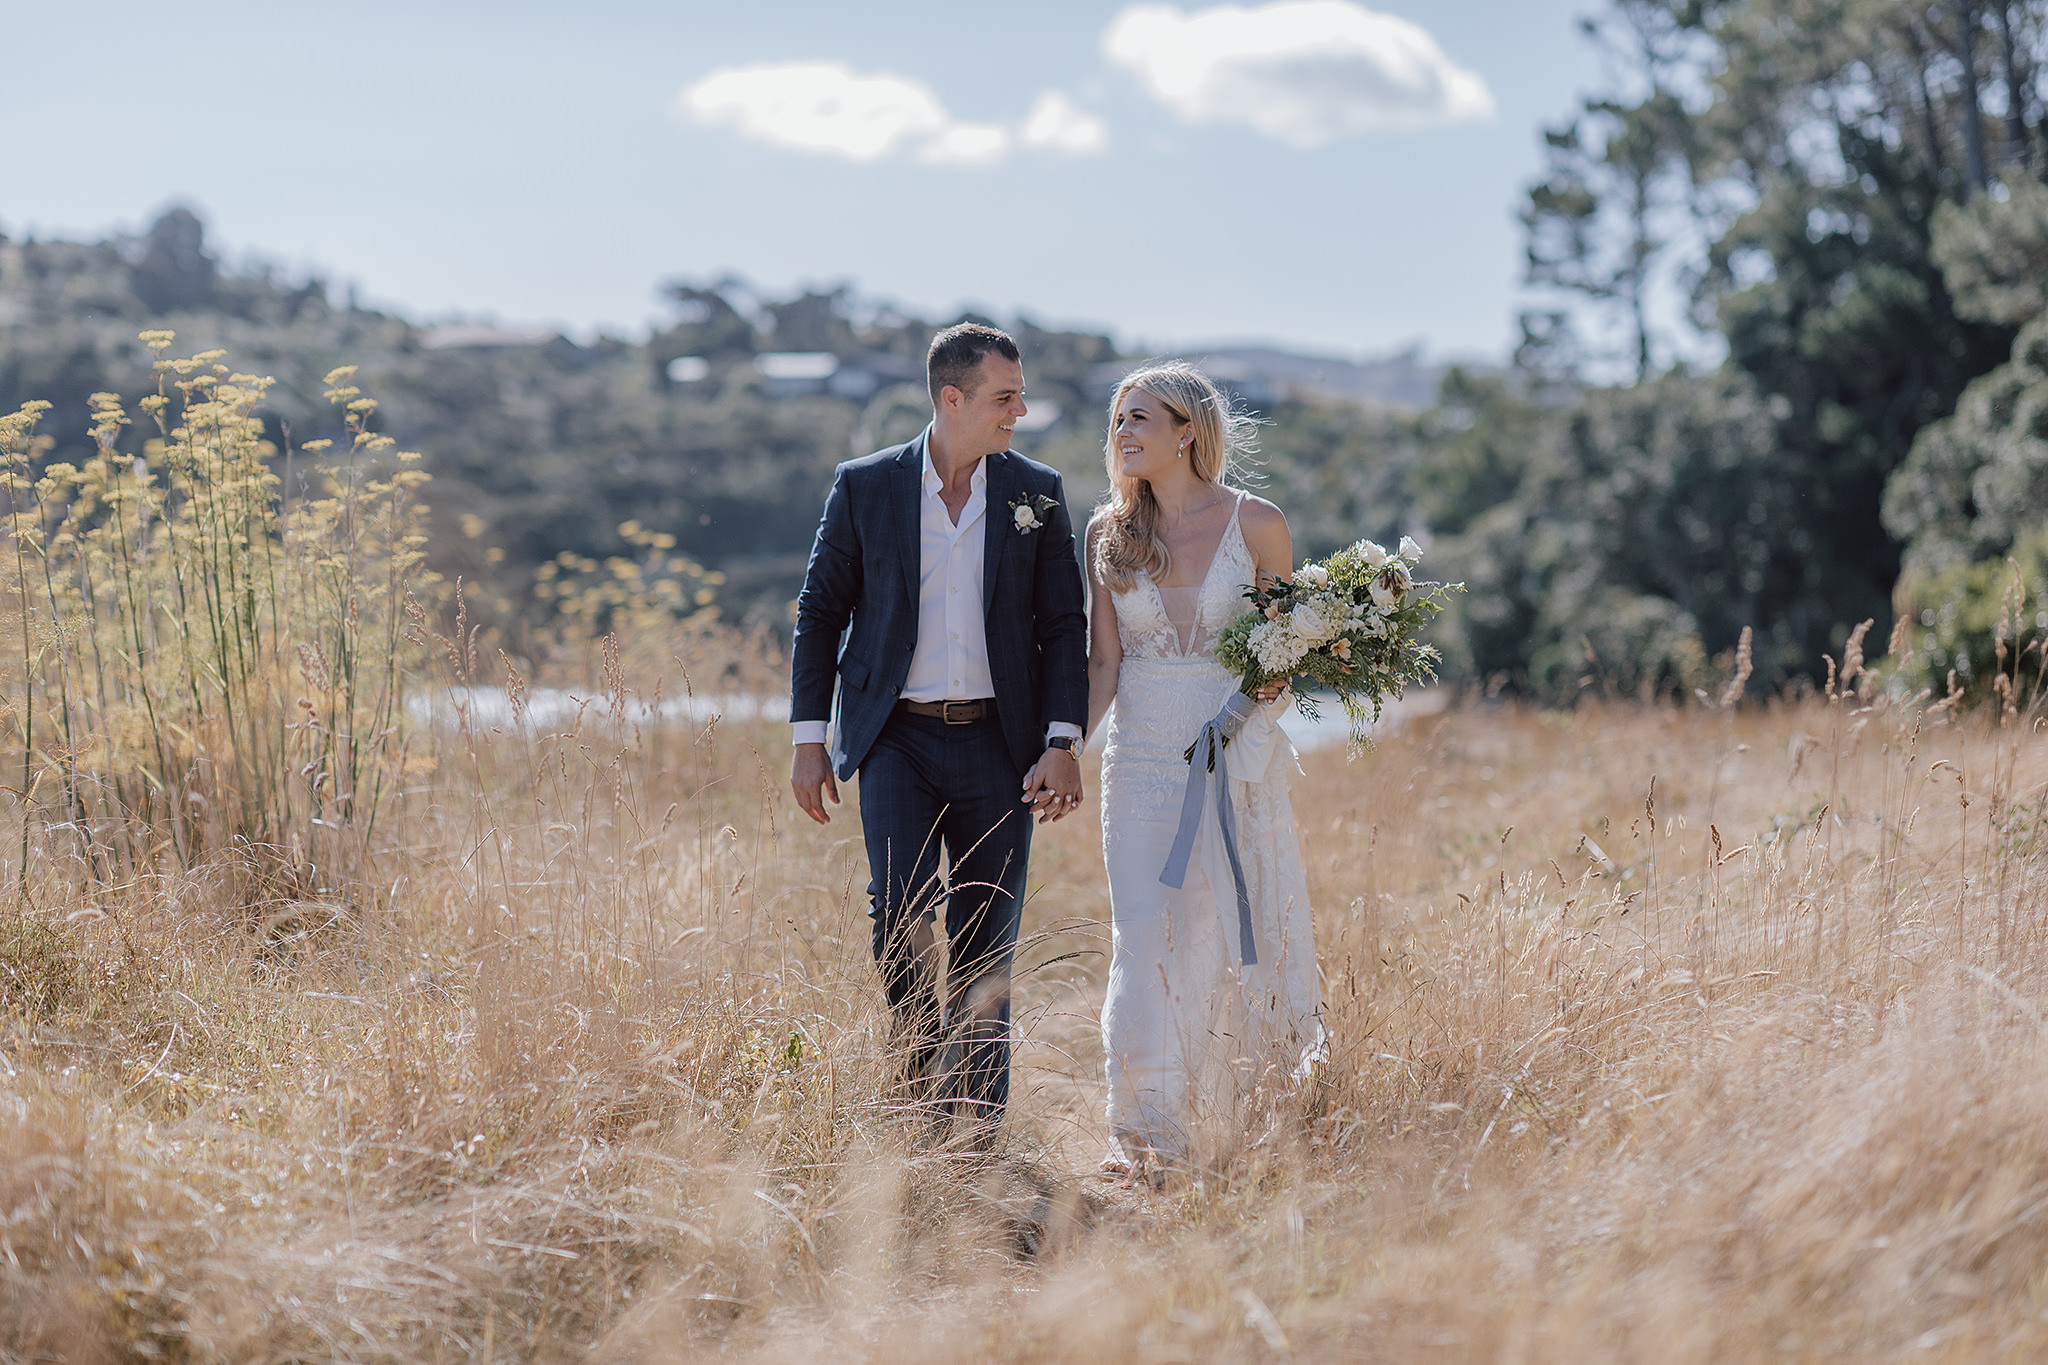 kelly-logan-whangapoua-wedding-jackson-bright20190212_0477.jpg